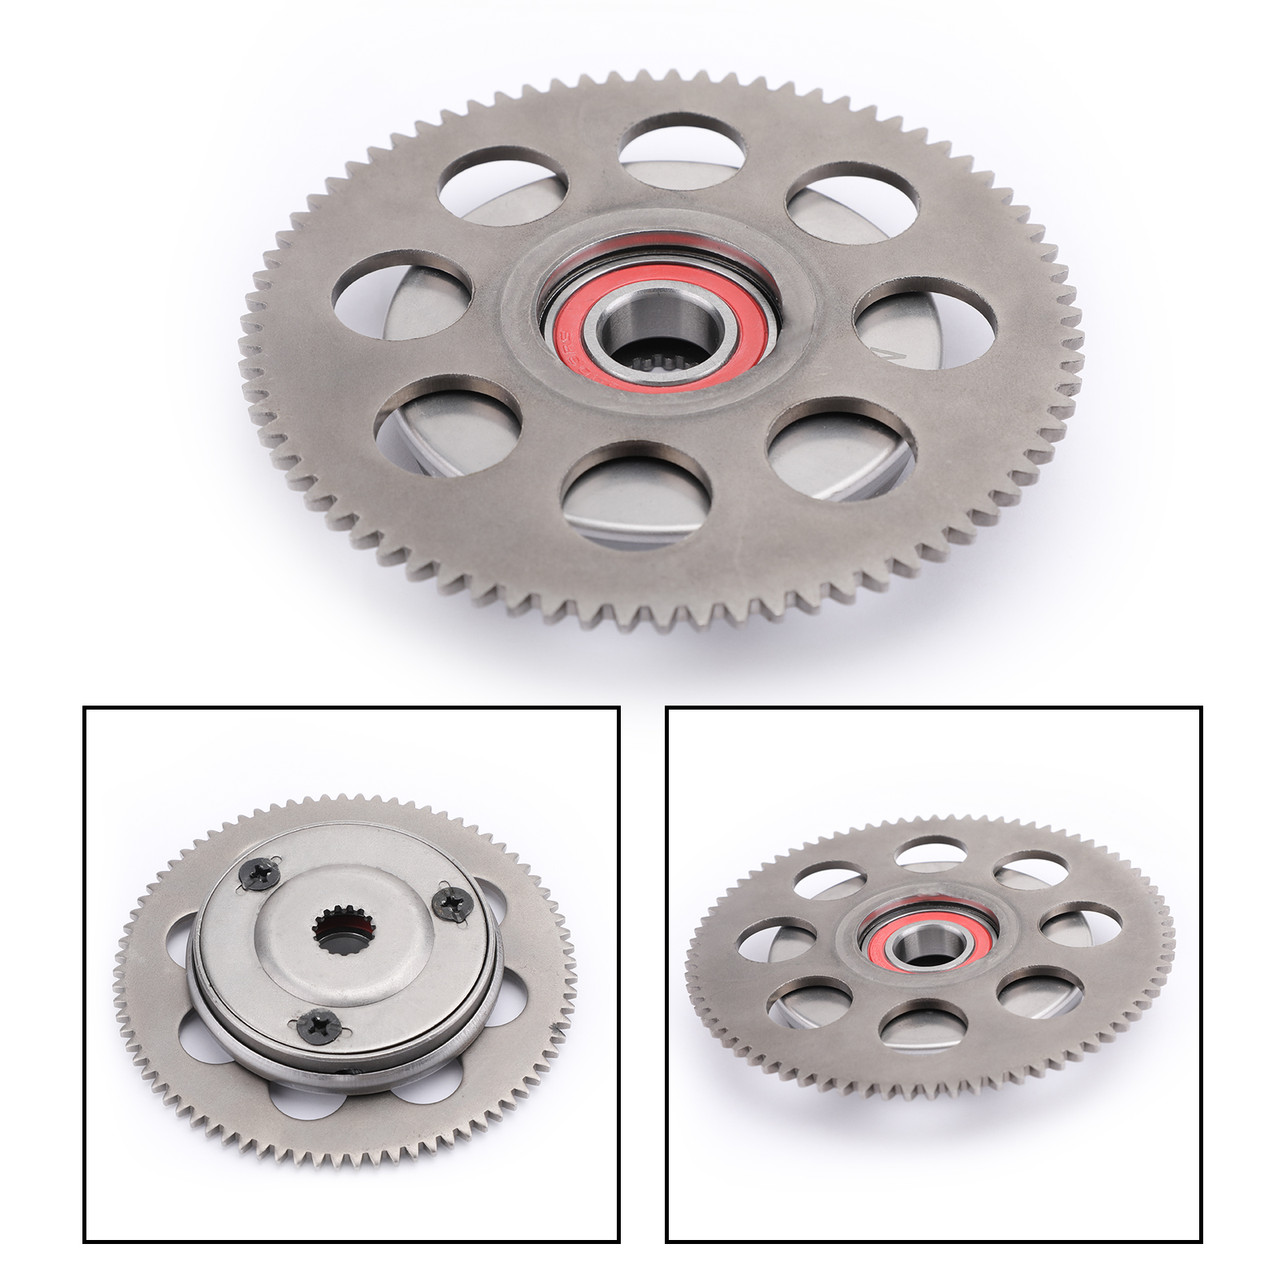 Starter Clutch One-Way Bearing for Yamaha Grizzly 350 2007-2014 New